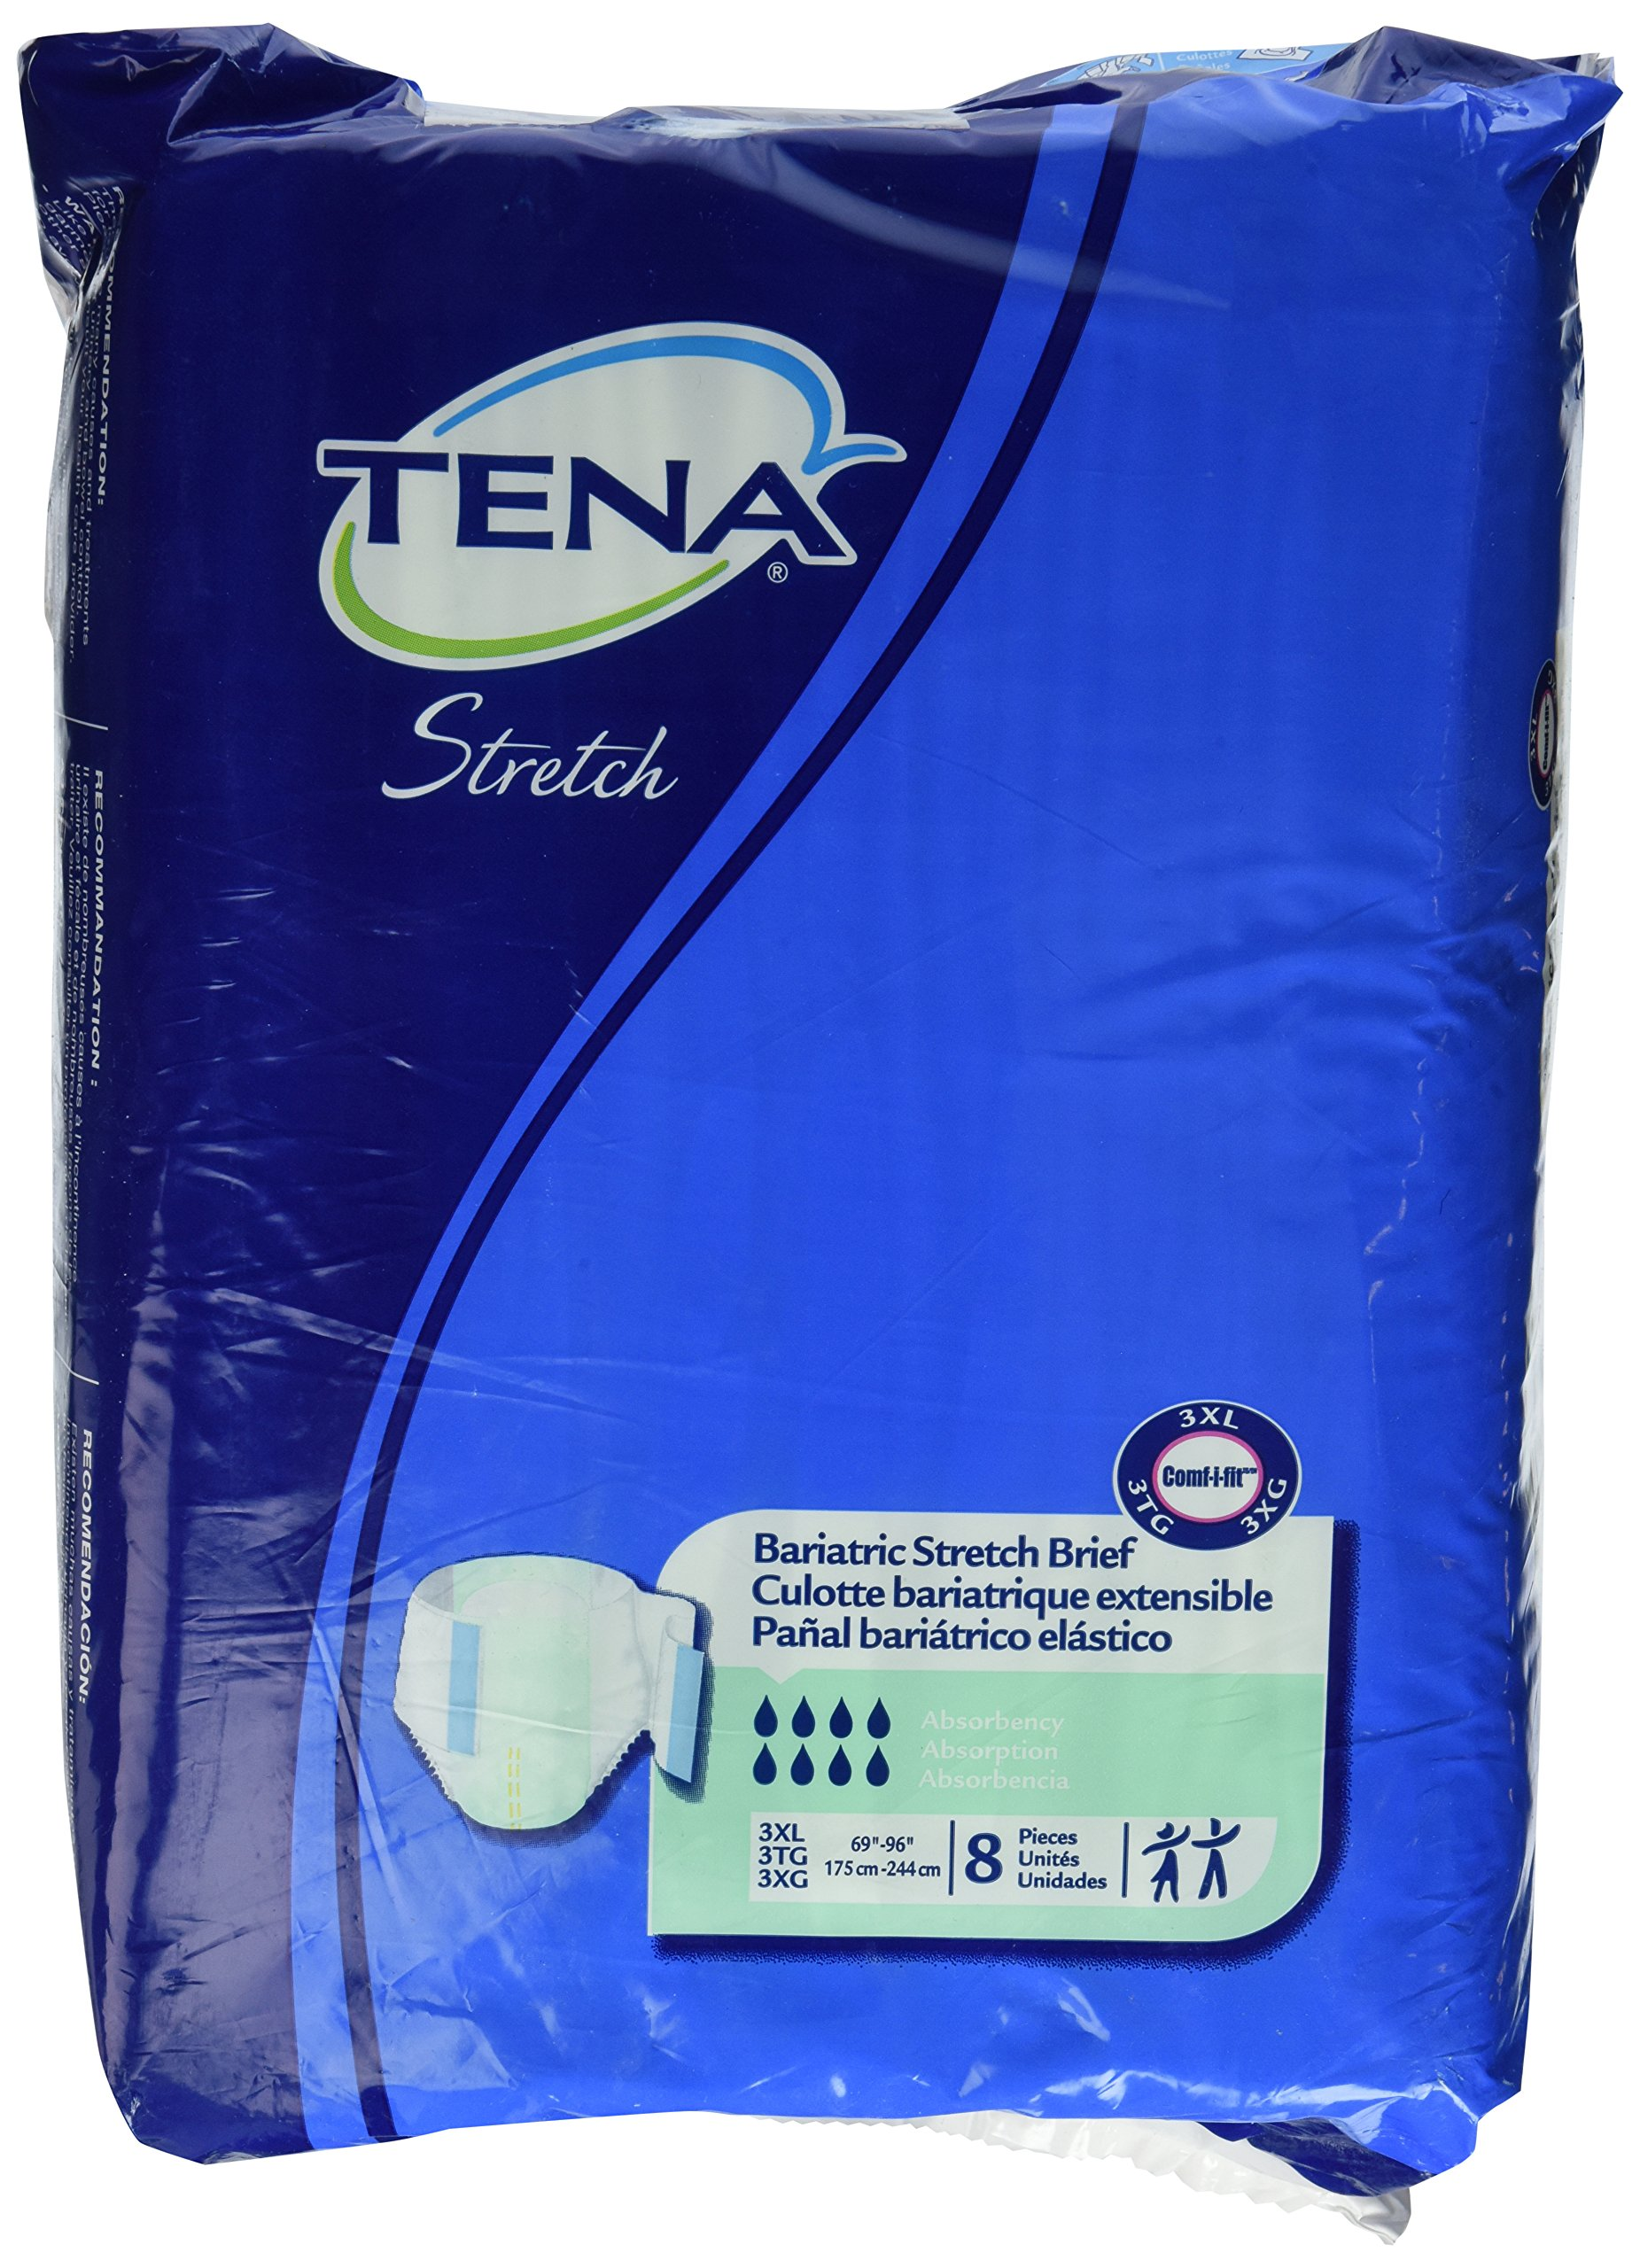 Tena Bariatric Briefs 3XL XXXL, Bag of 8, Waists 69 - 96 in.